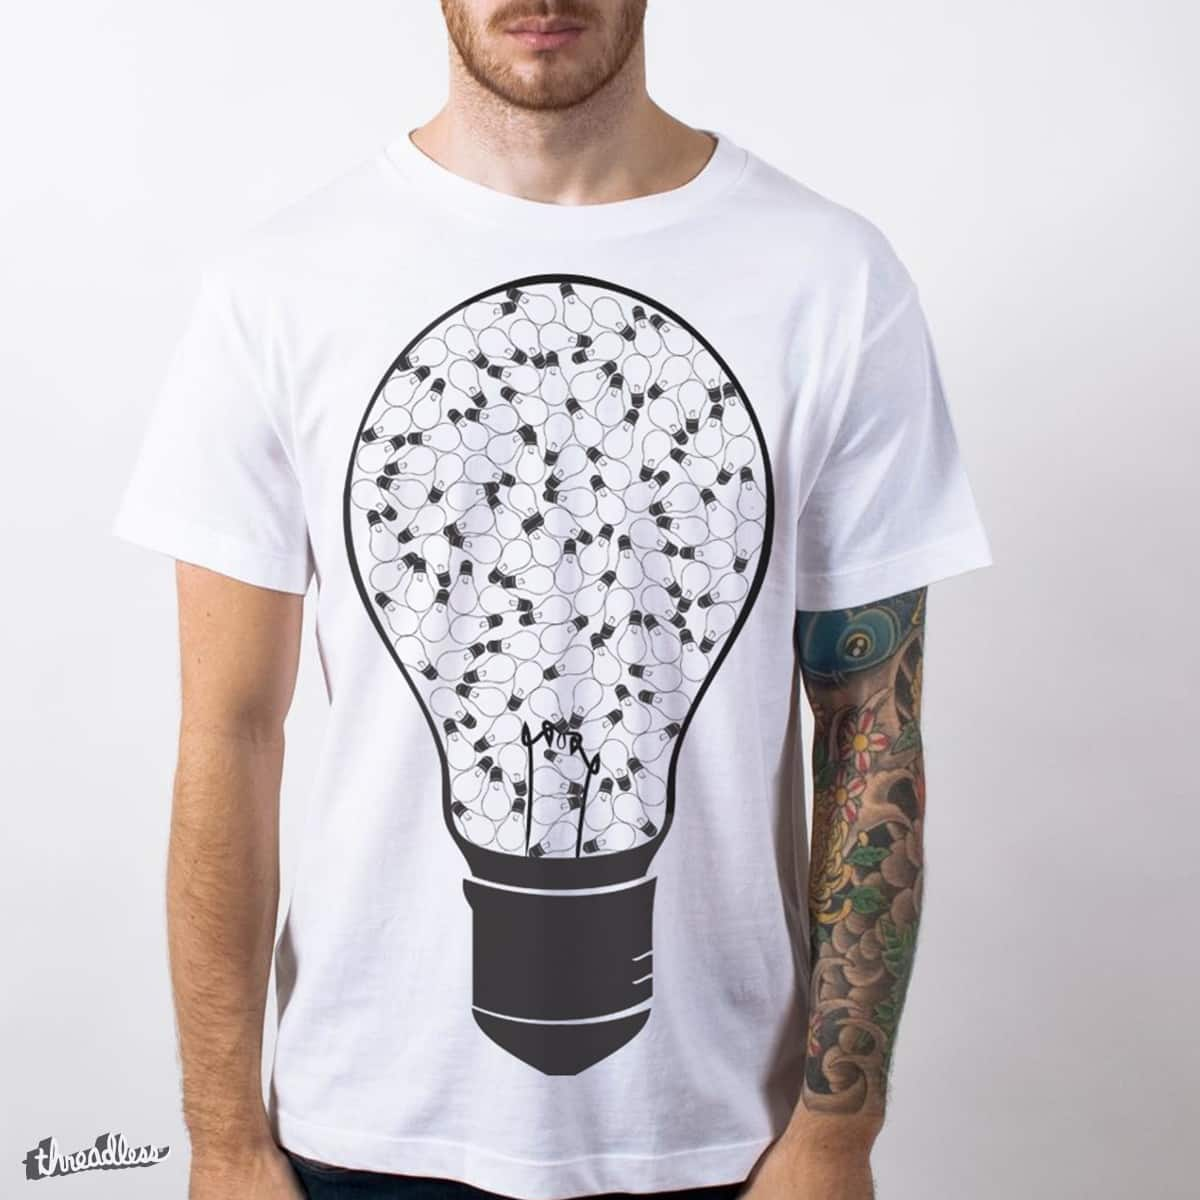 Bright ideas by Danjonesuk on Threadless